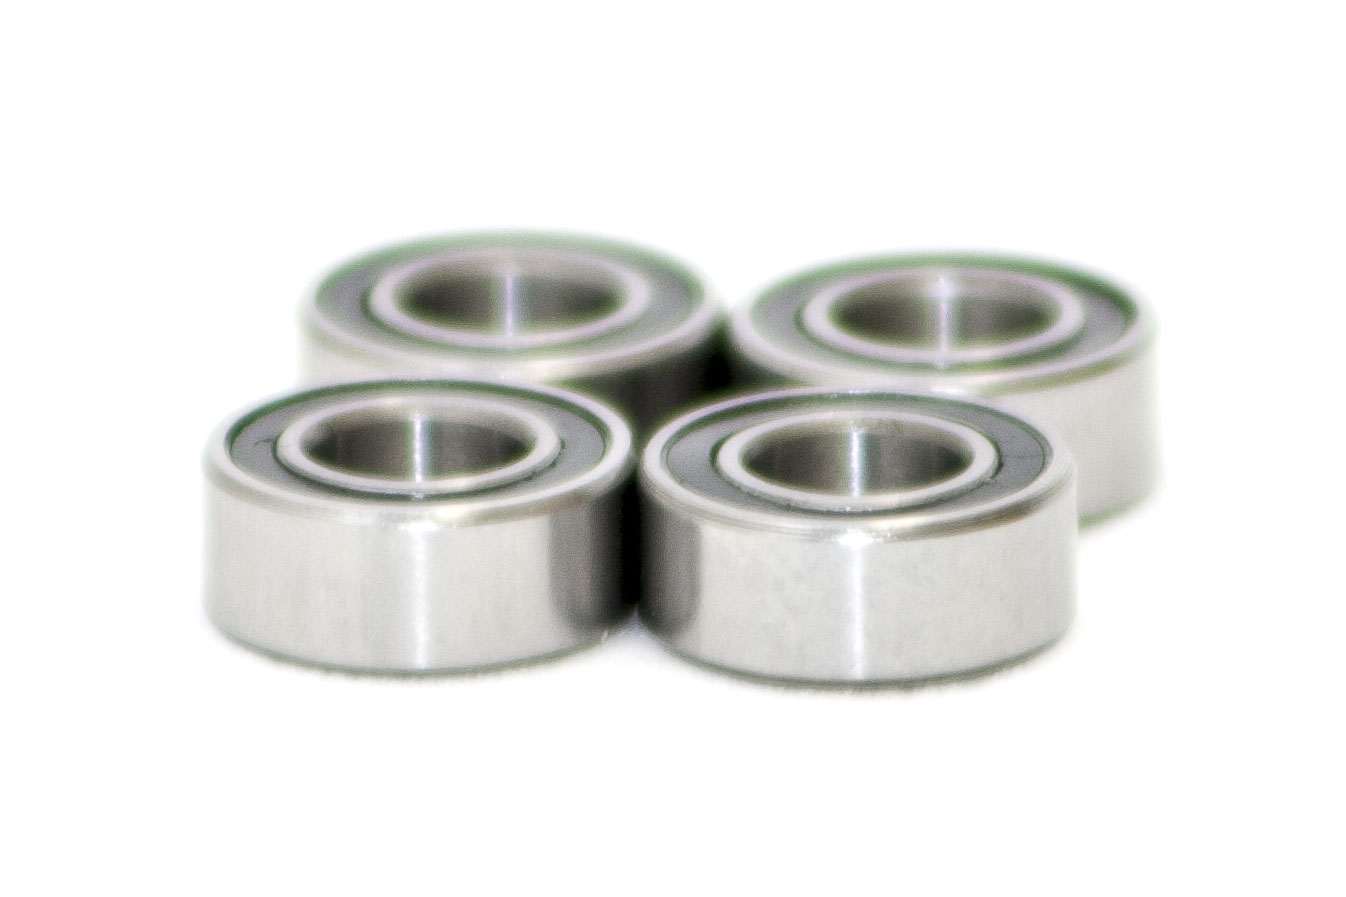 QS Front Wheel Hub Bearings (5*10*4mm) (set of 4)